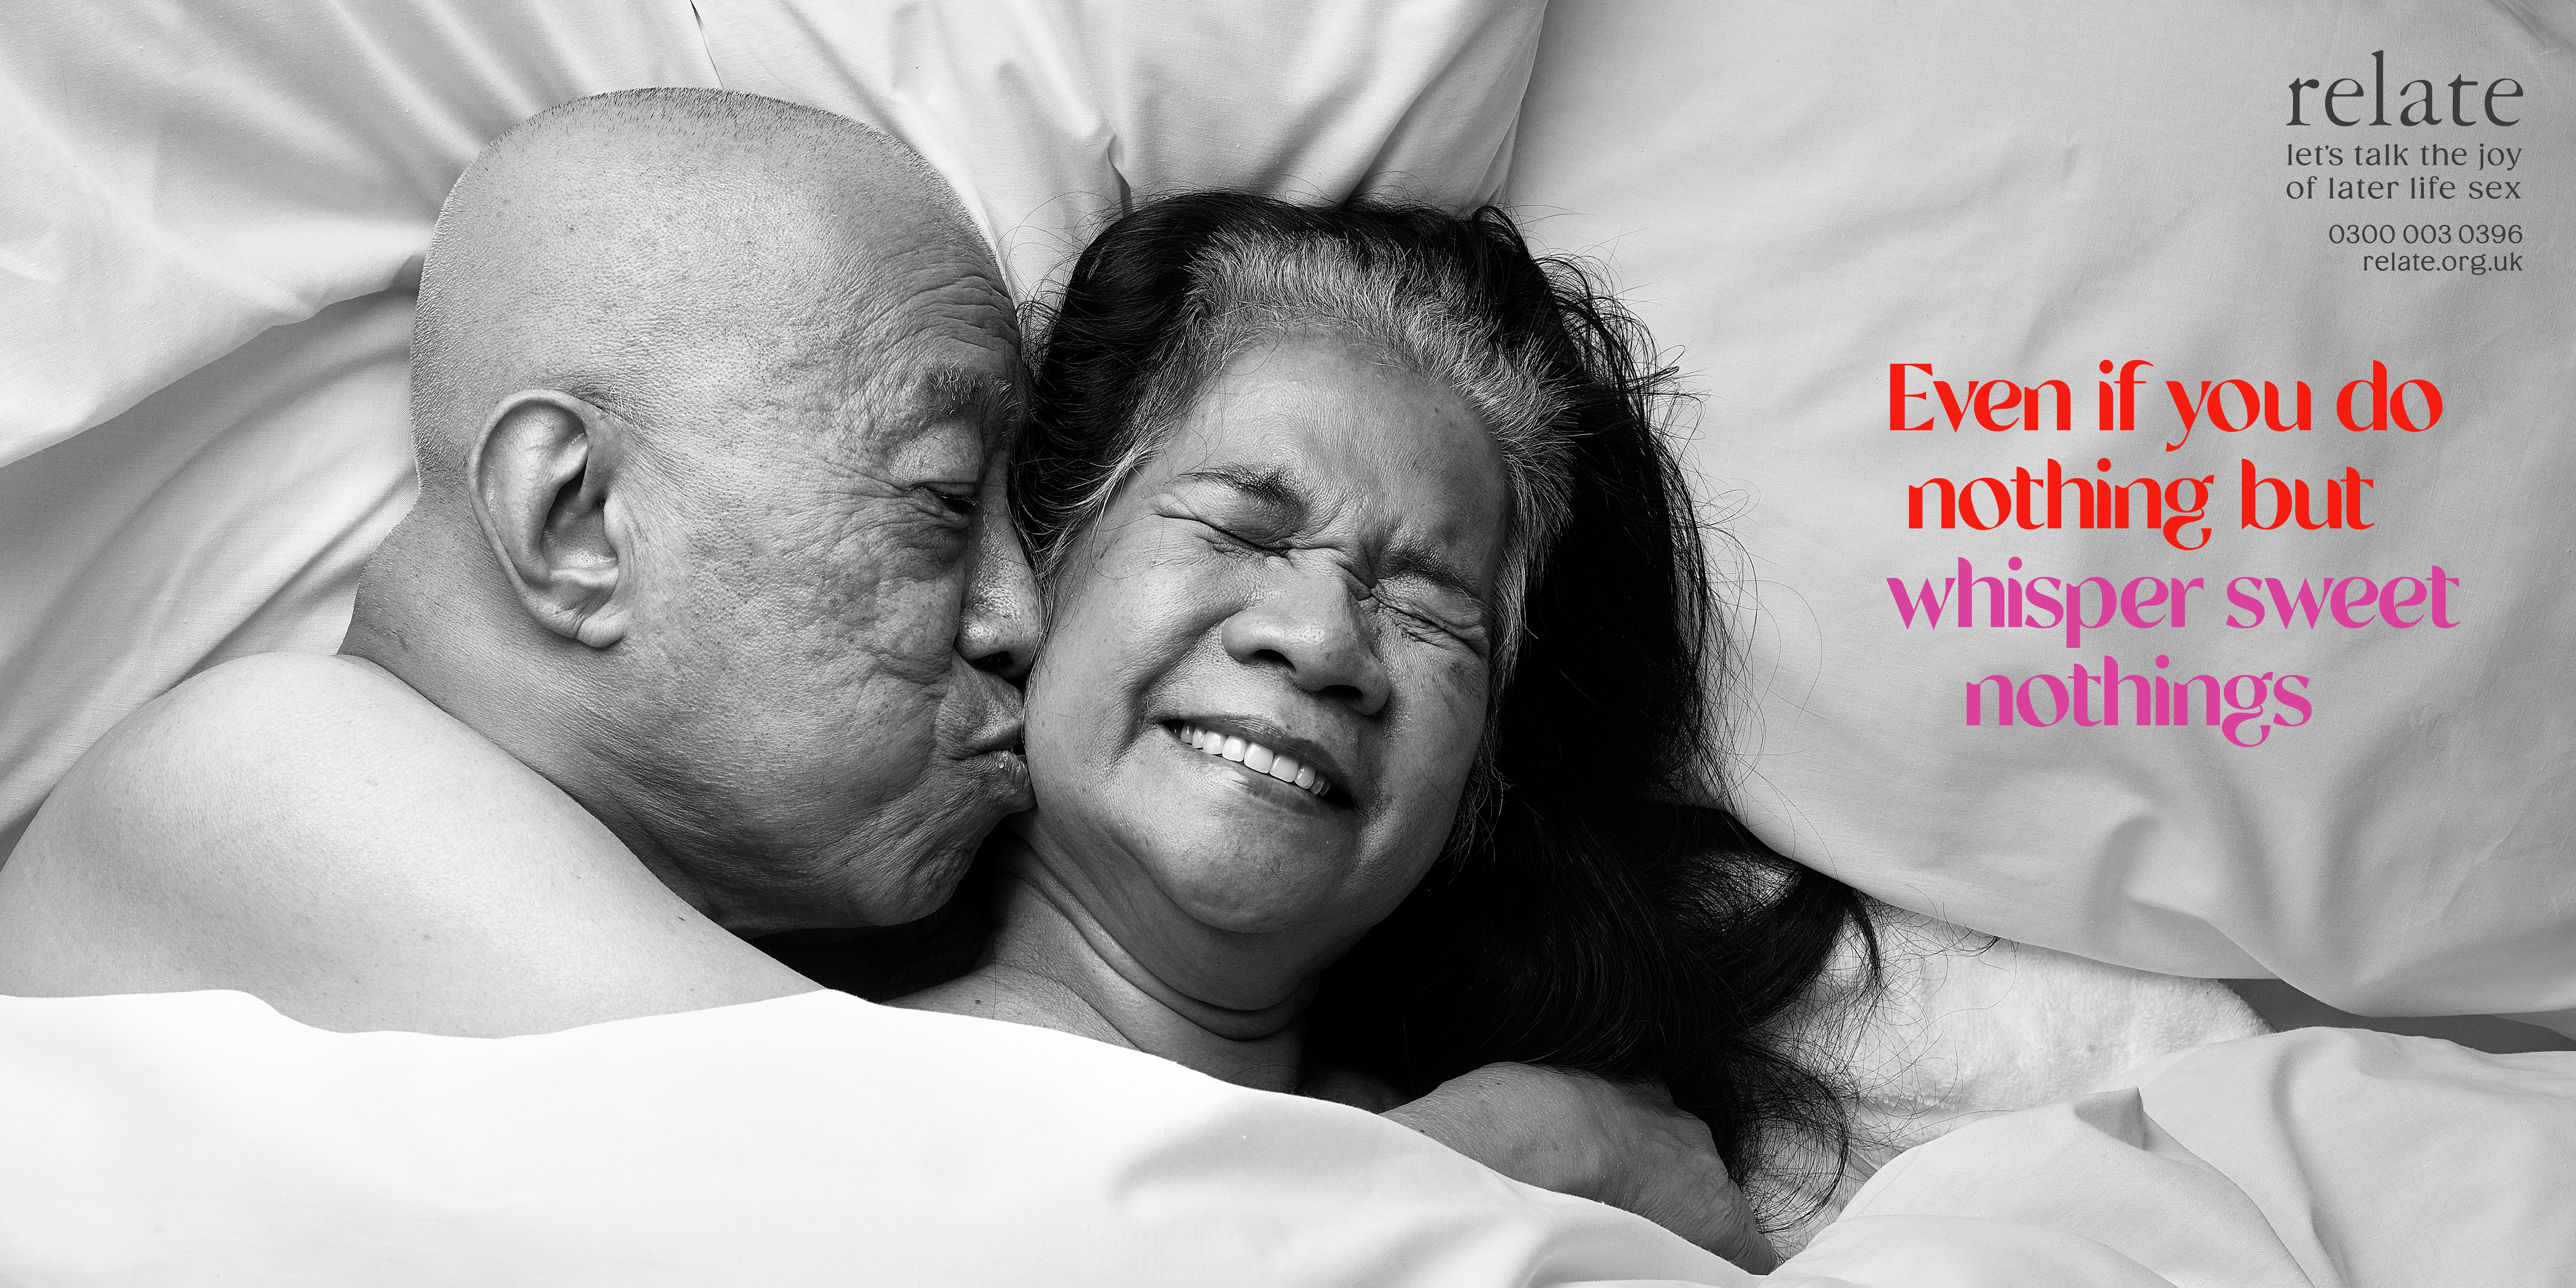 older couple lying in bed together with caption 'Even if you do nothing but whisper sweet nothings'